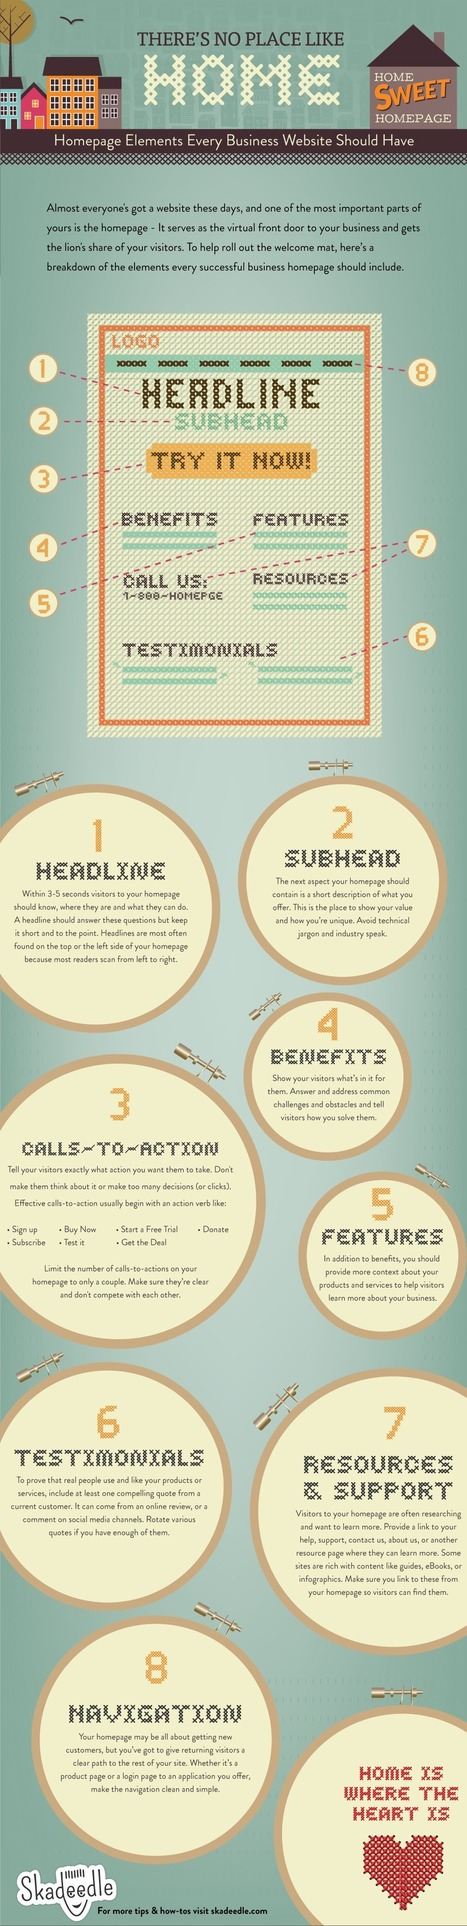 Homepage Elements Every Business Website Should Have [Infographic]   visualizing social media   Scoop.it